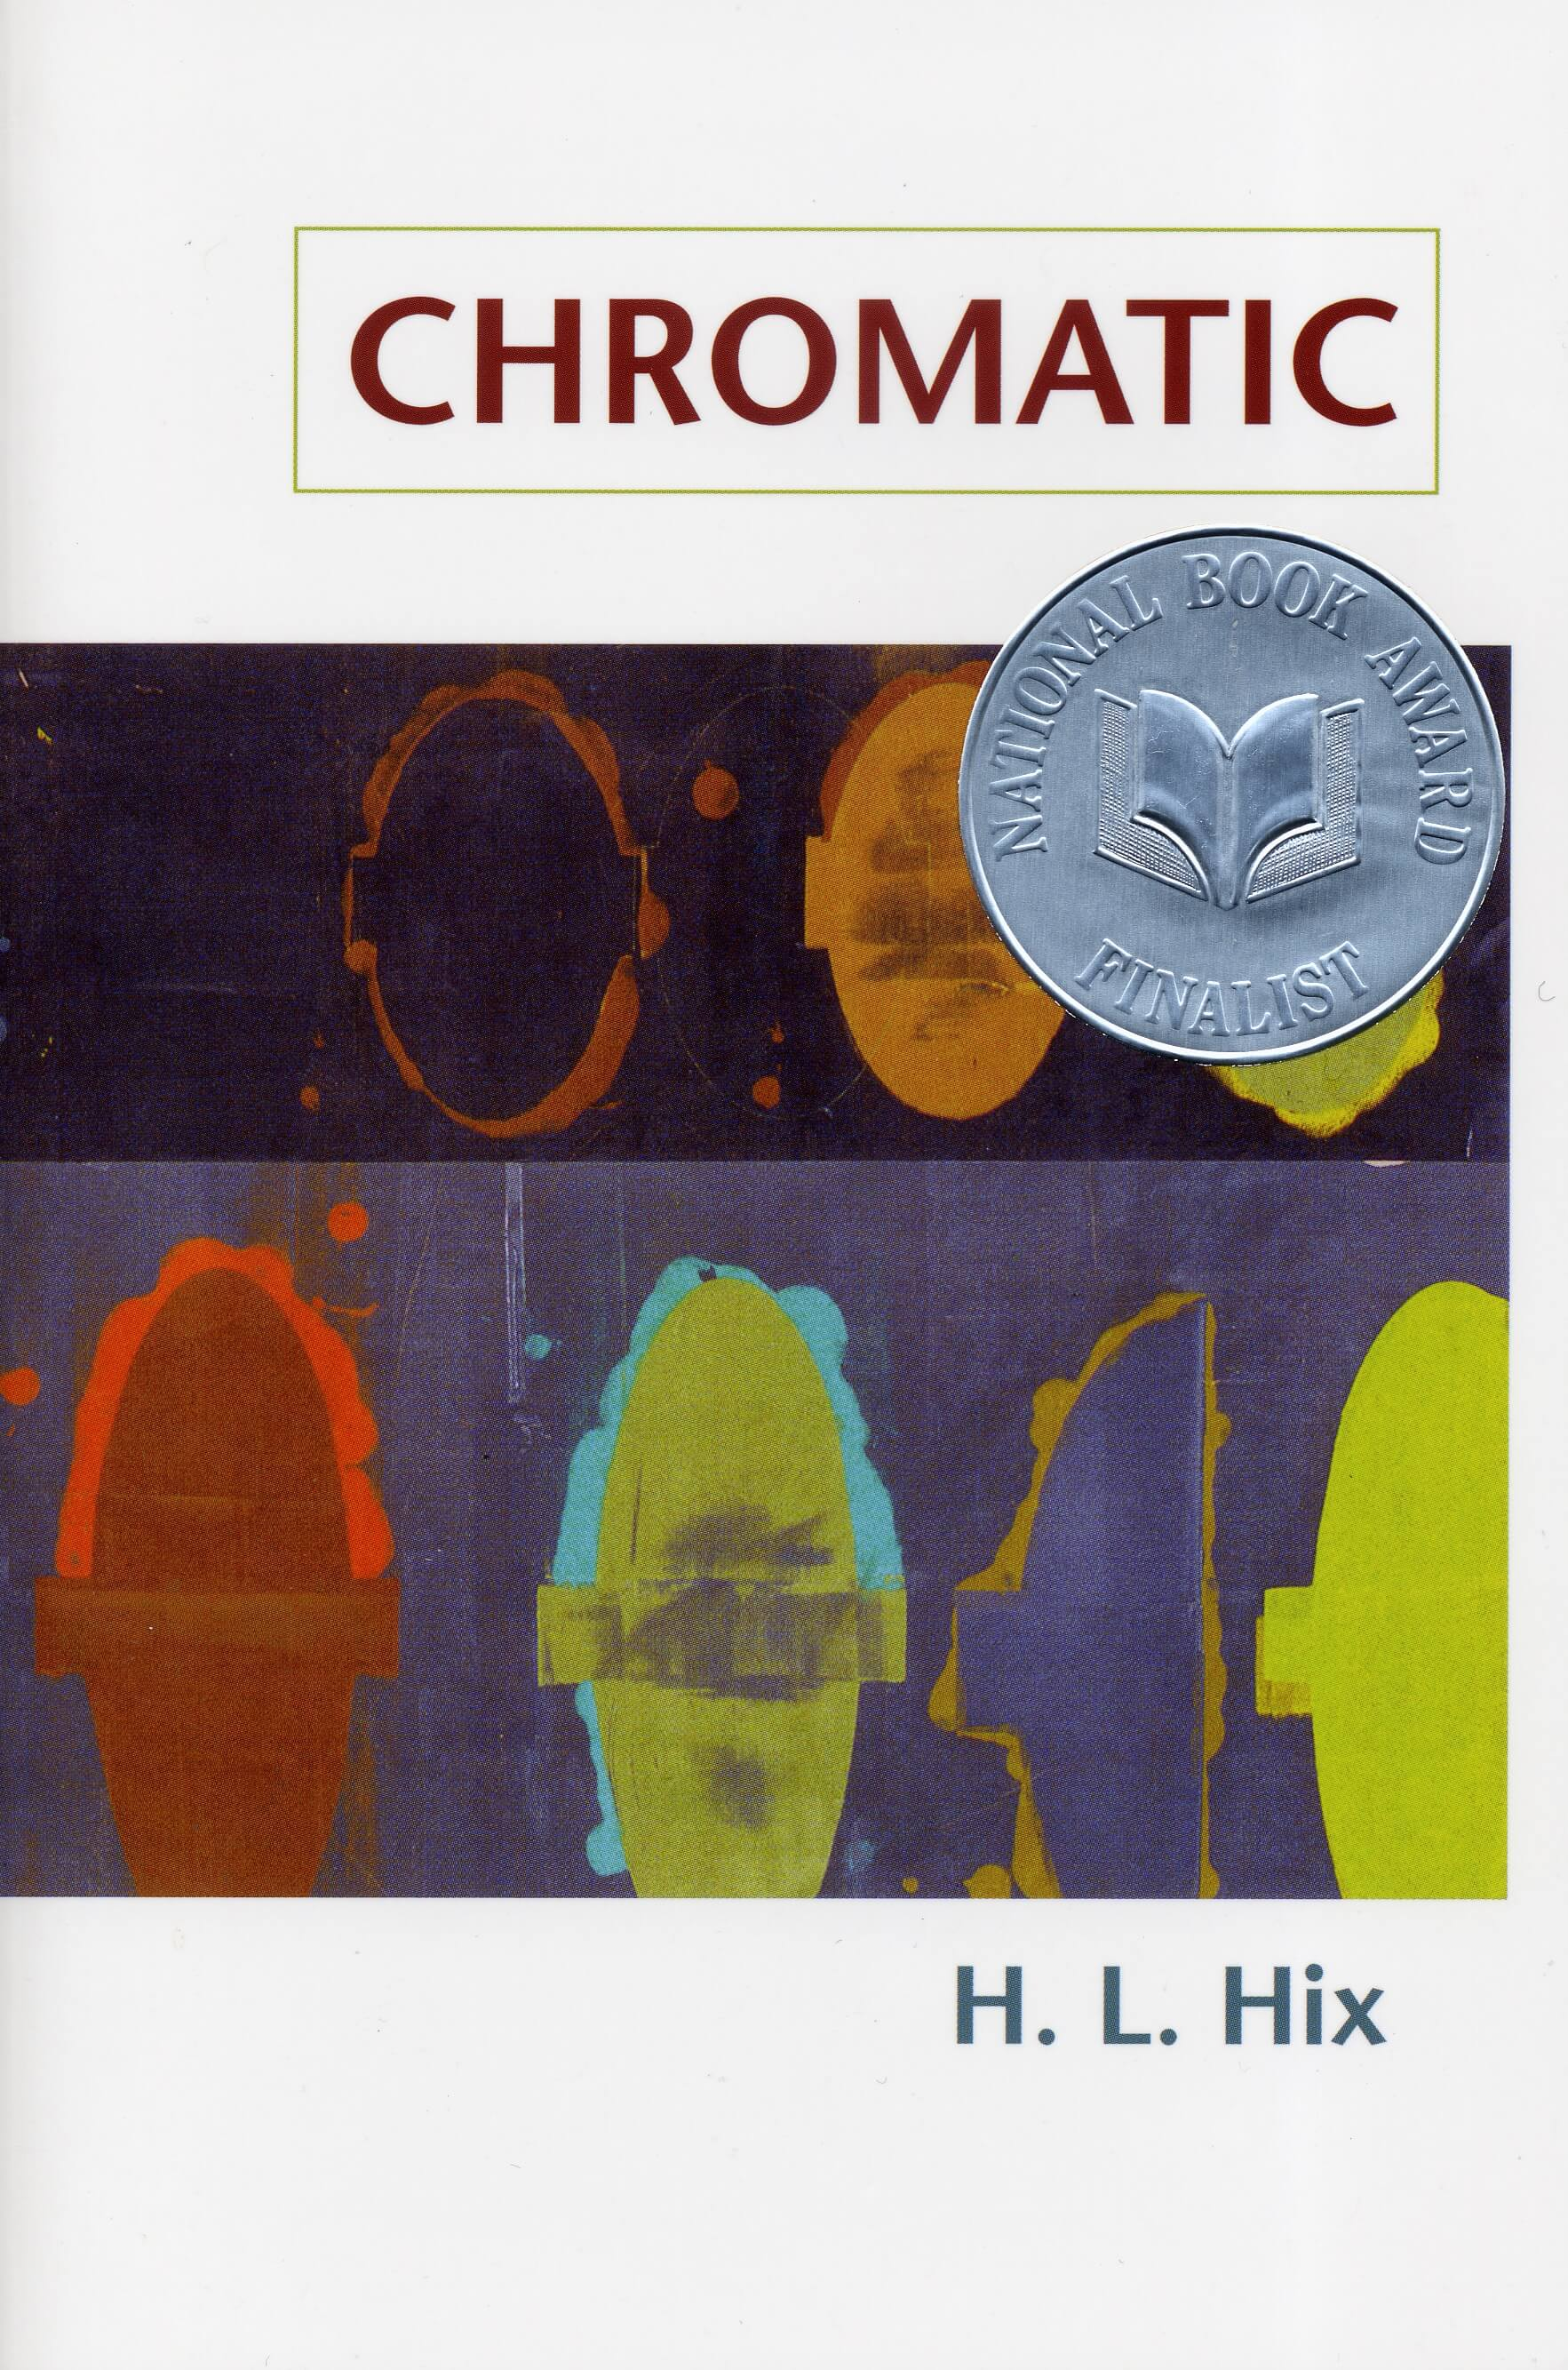 Chromatic by H.L. Hix book cover, 2006